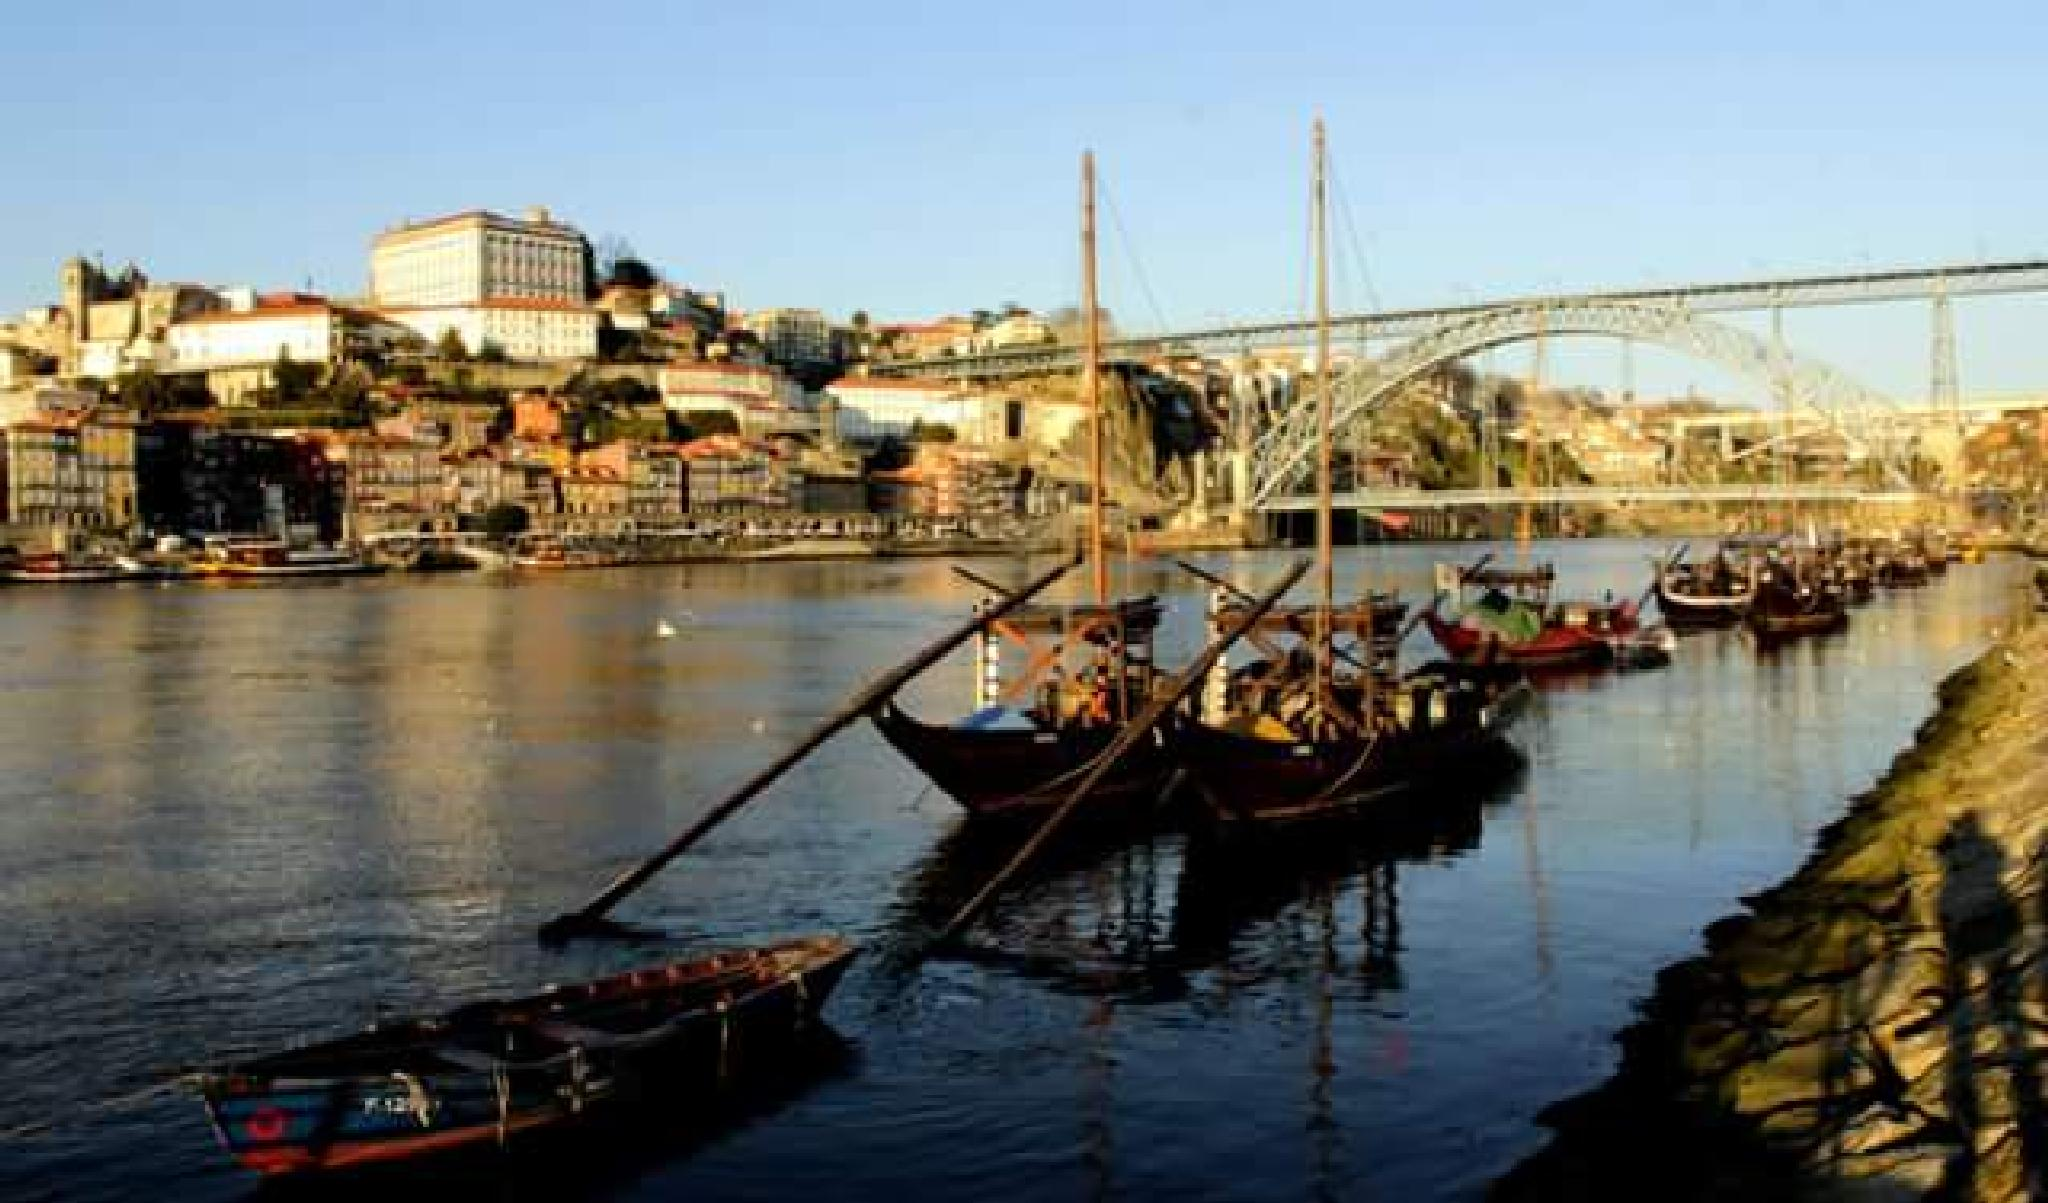 view of the Douro river by thierrylorenzo